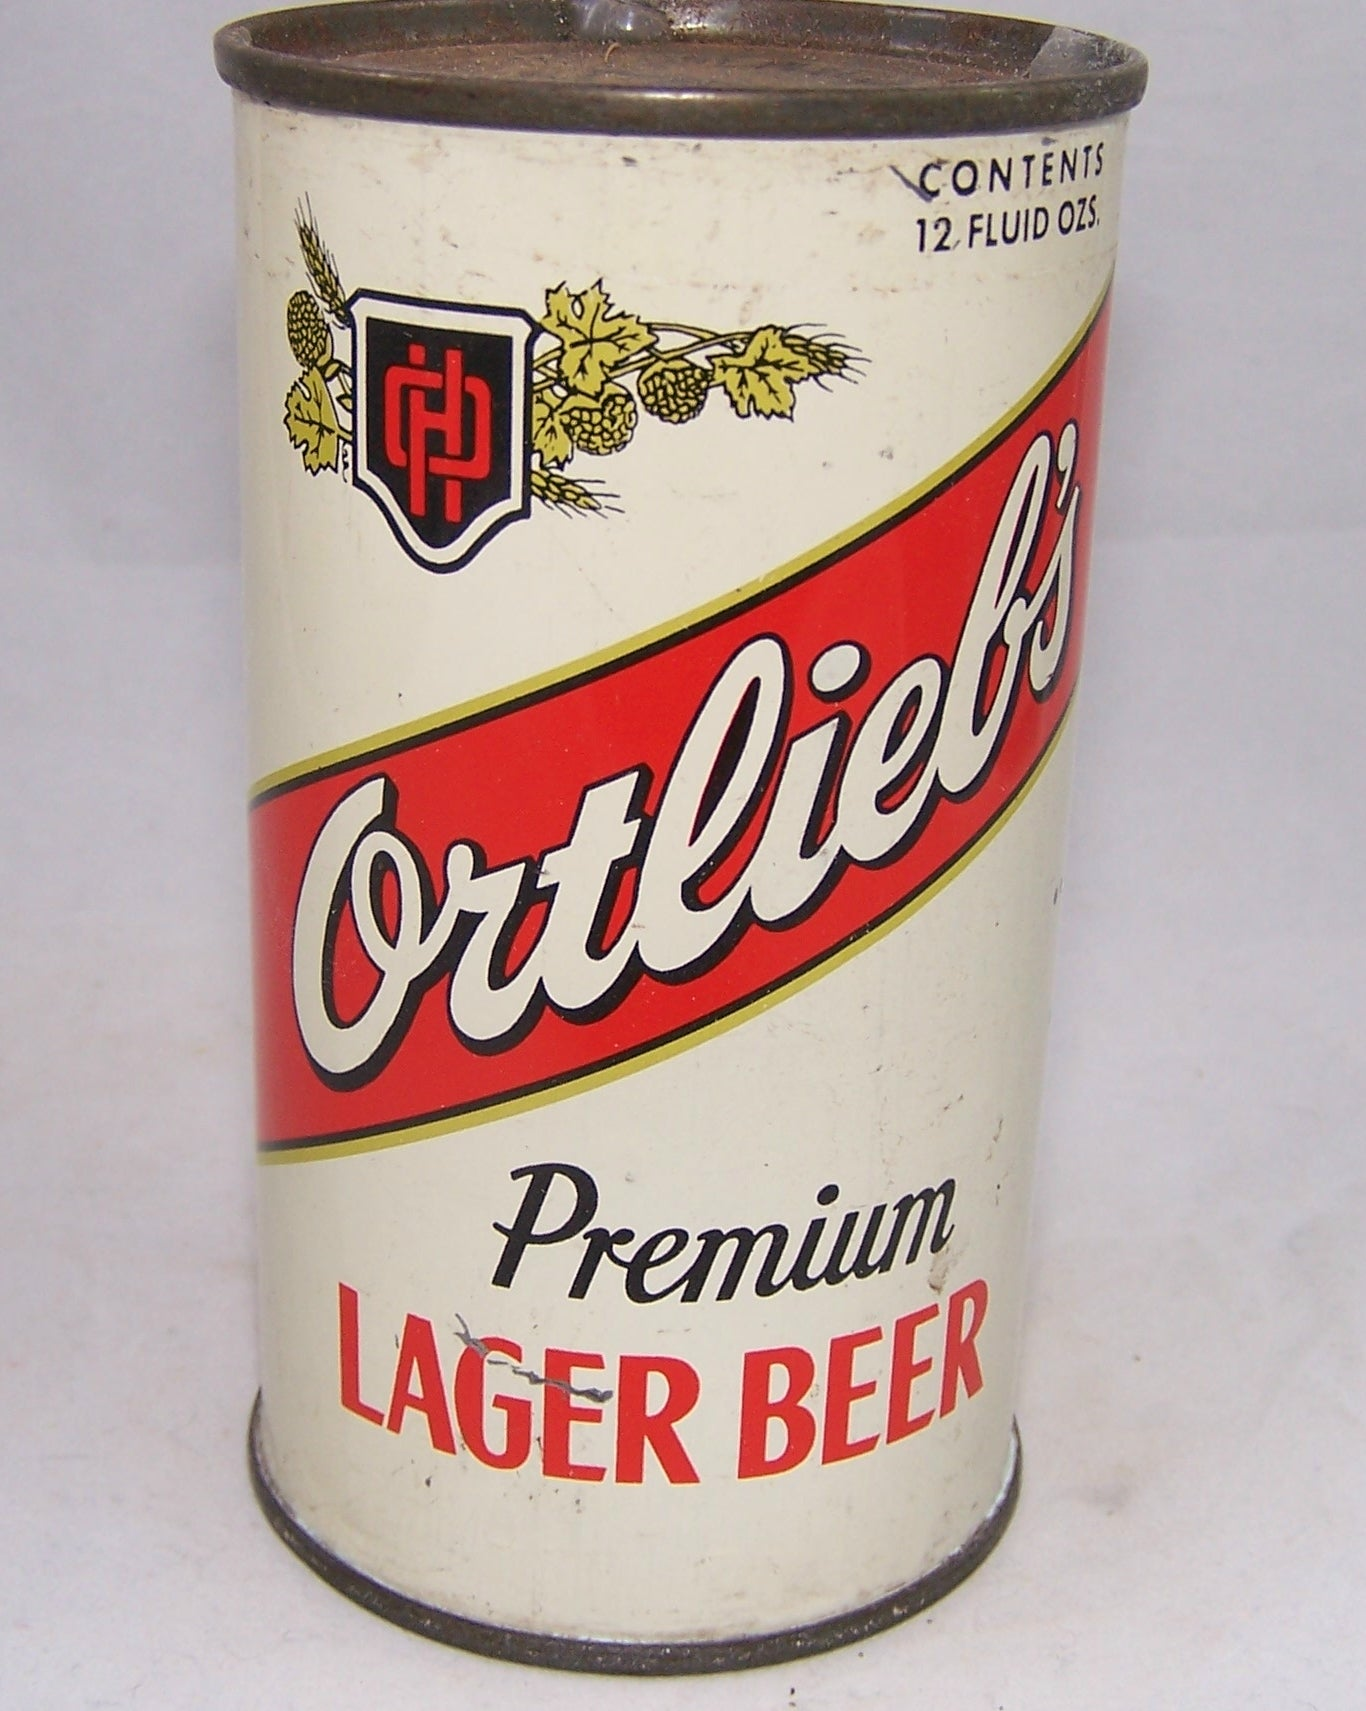 Ortlieb's Premium Lager Beer, USBC 109-18, Grade 1/1- Sold on 09/01/17